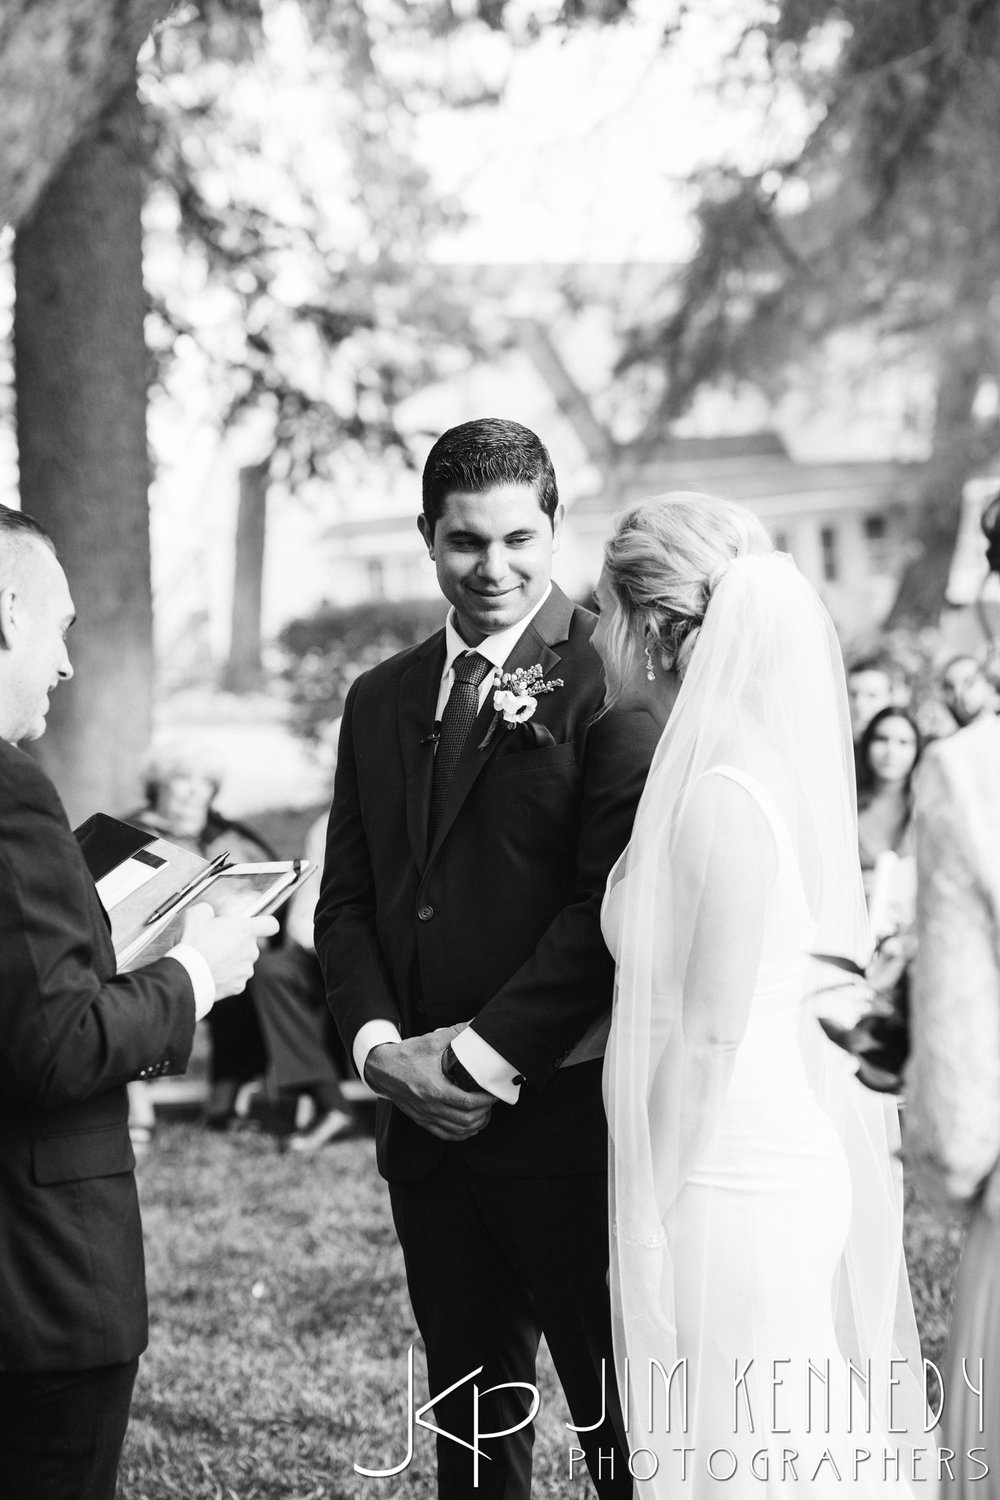 jim_kennedy_photographers_highland_springs_wedding_caitlyn_0113.jpg